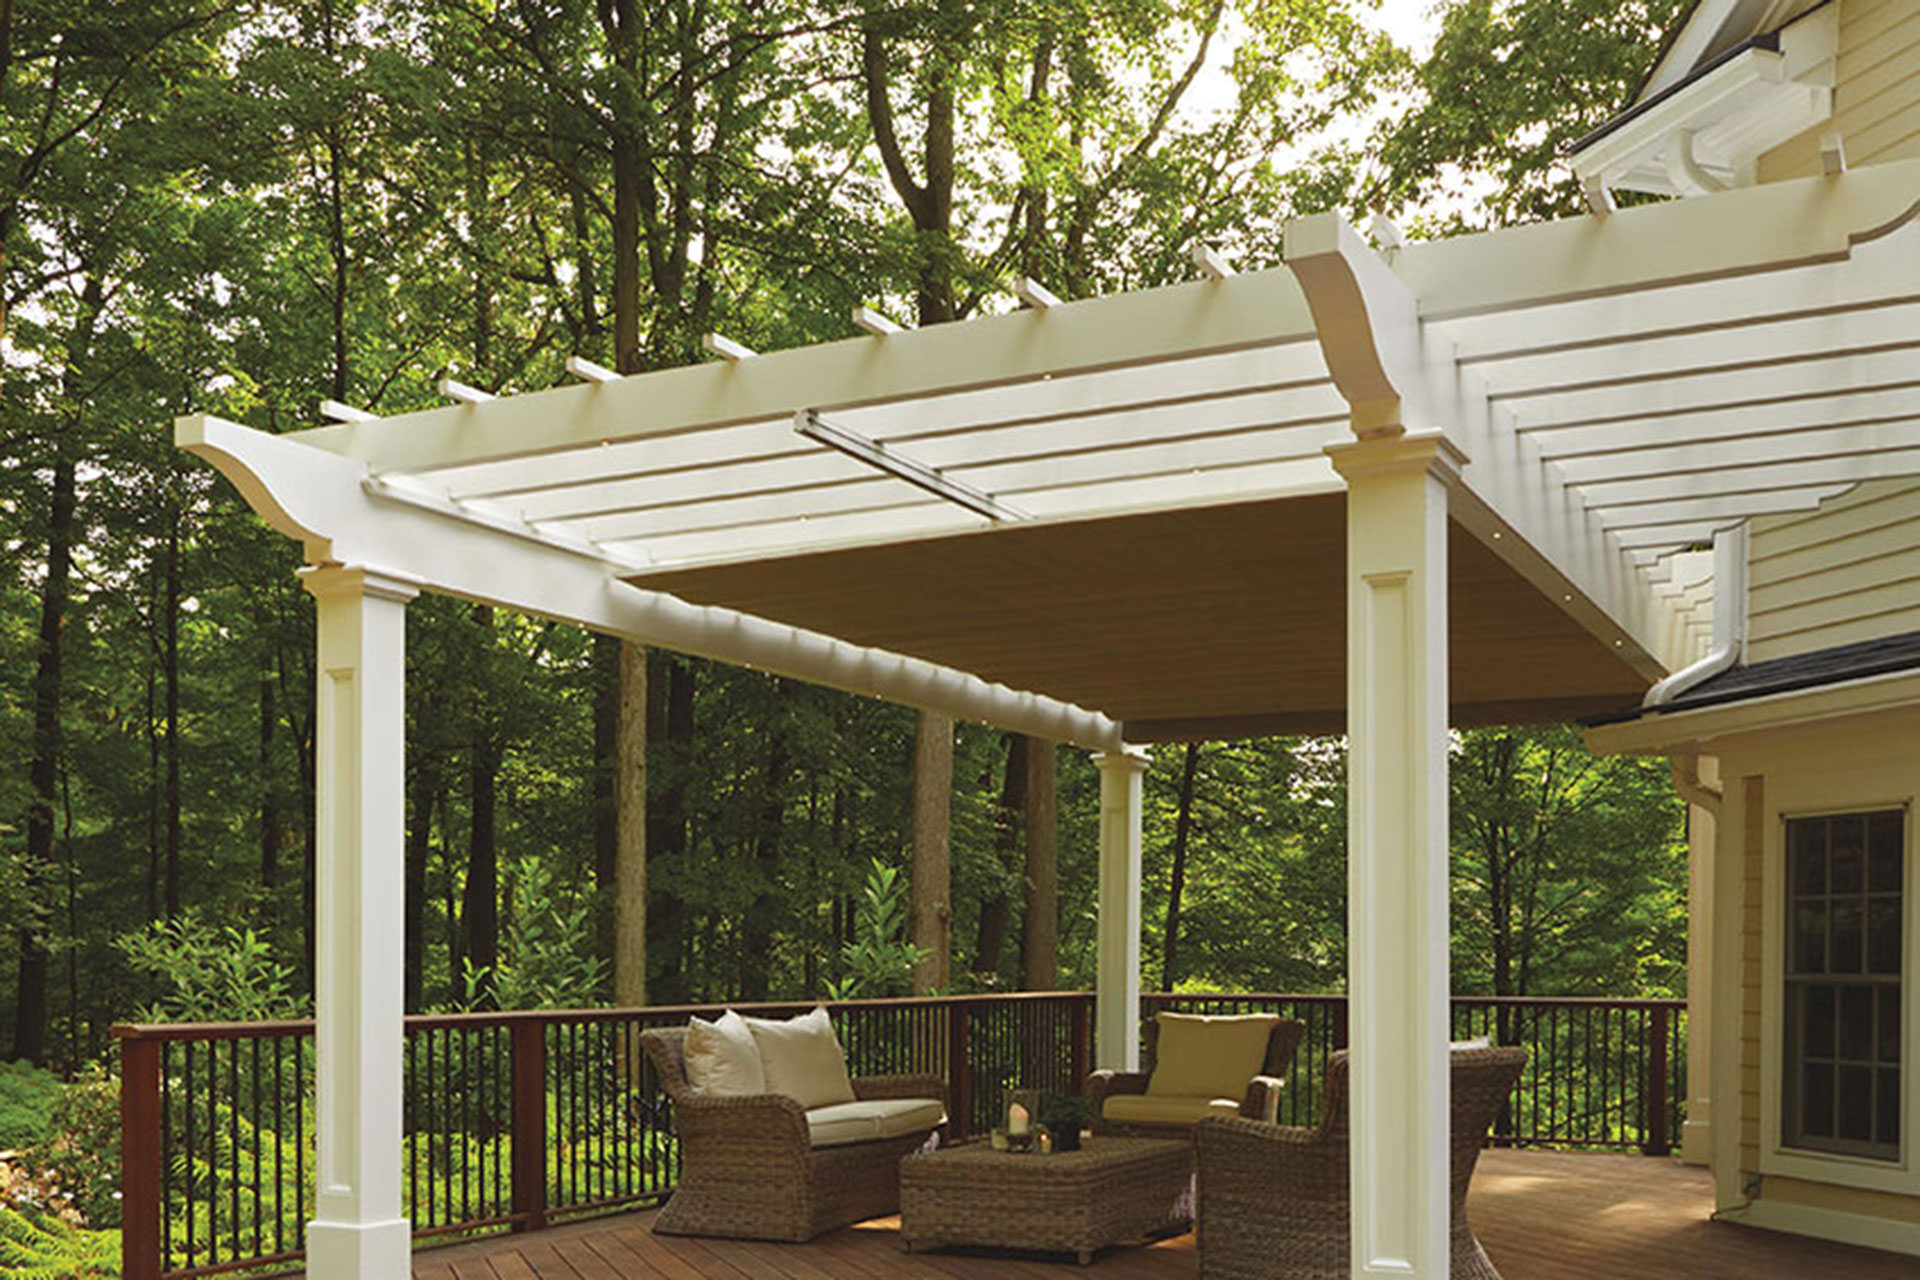 Retractable Pergola Canopy In Morris Plains | ShadeFX Canopies